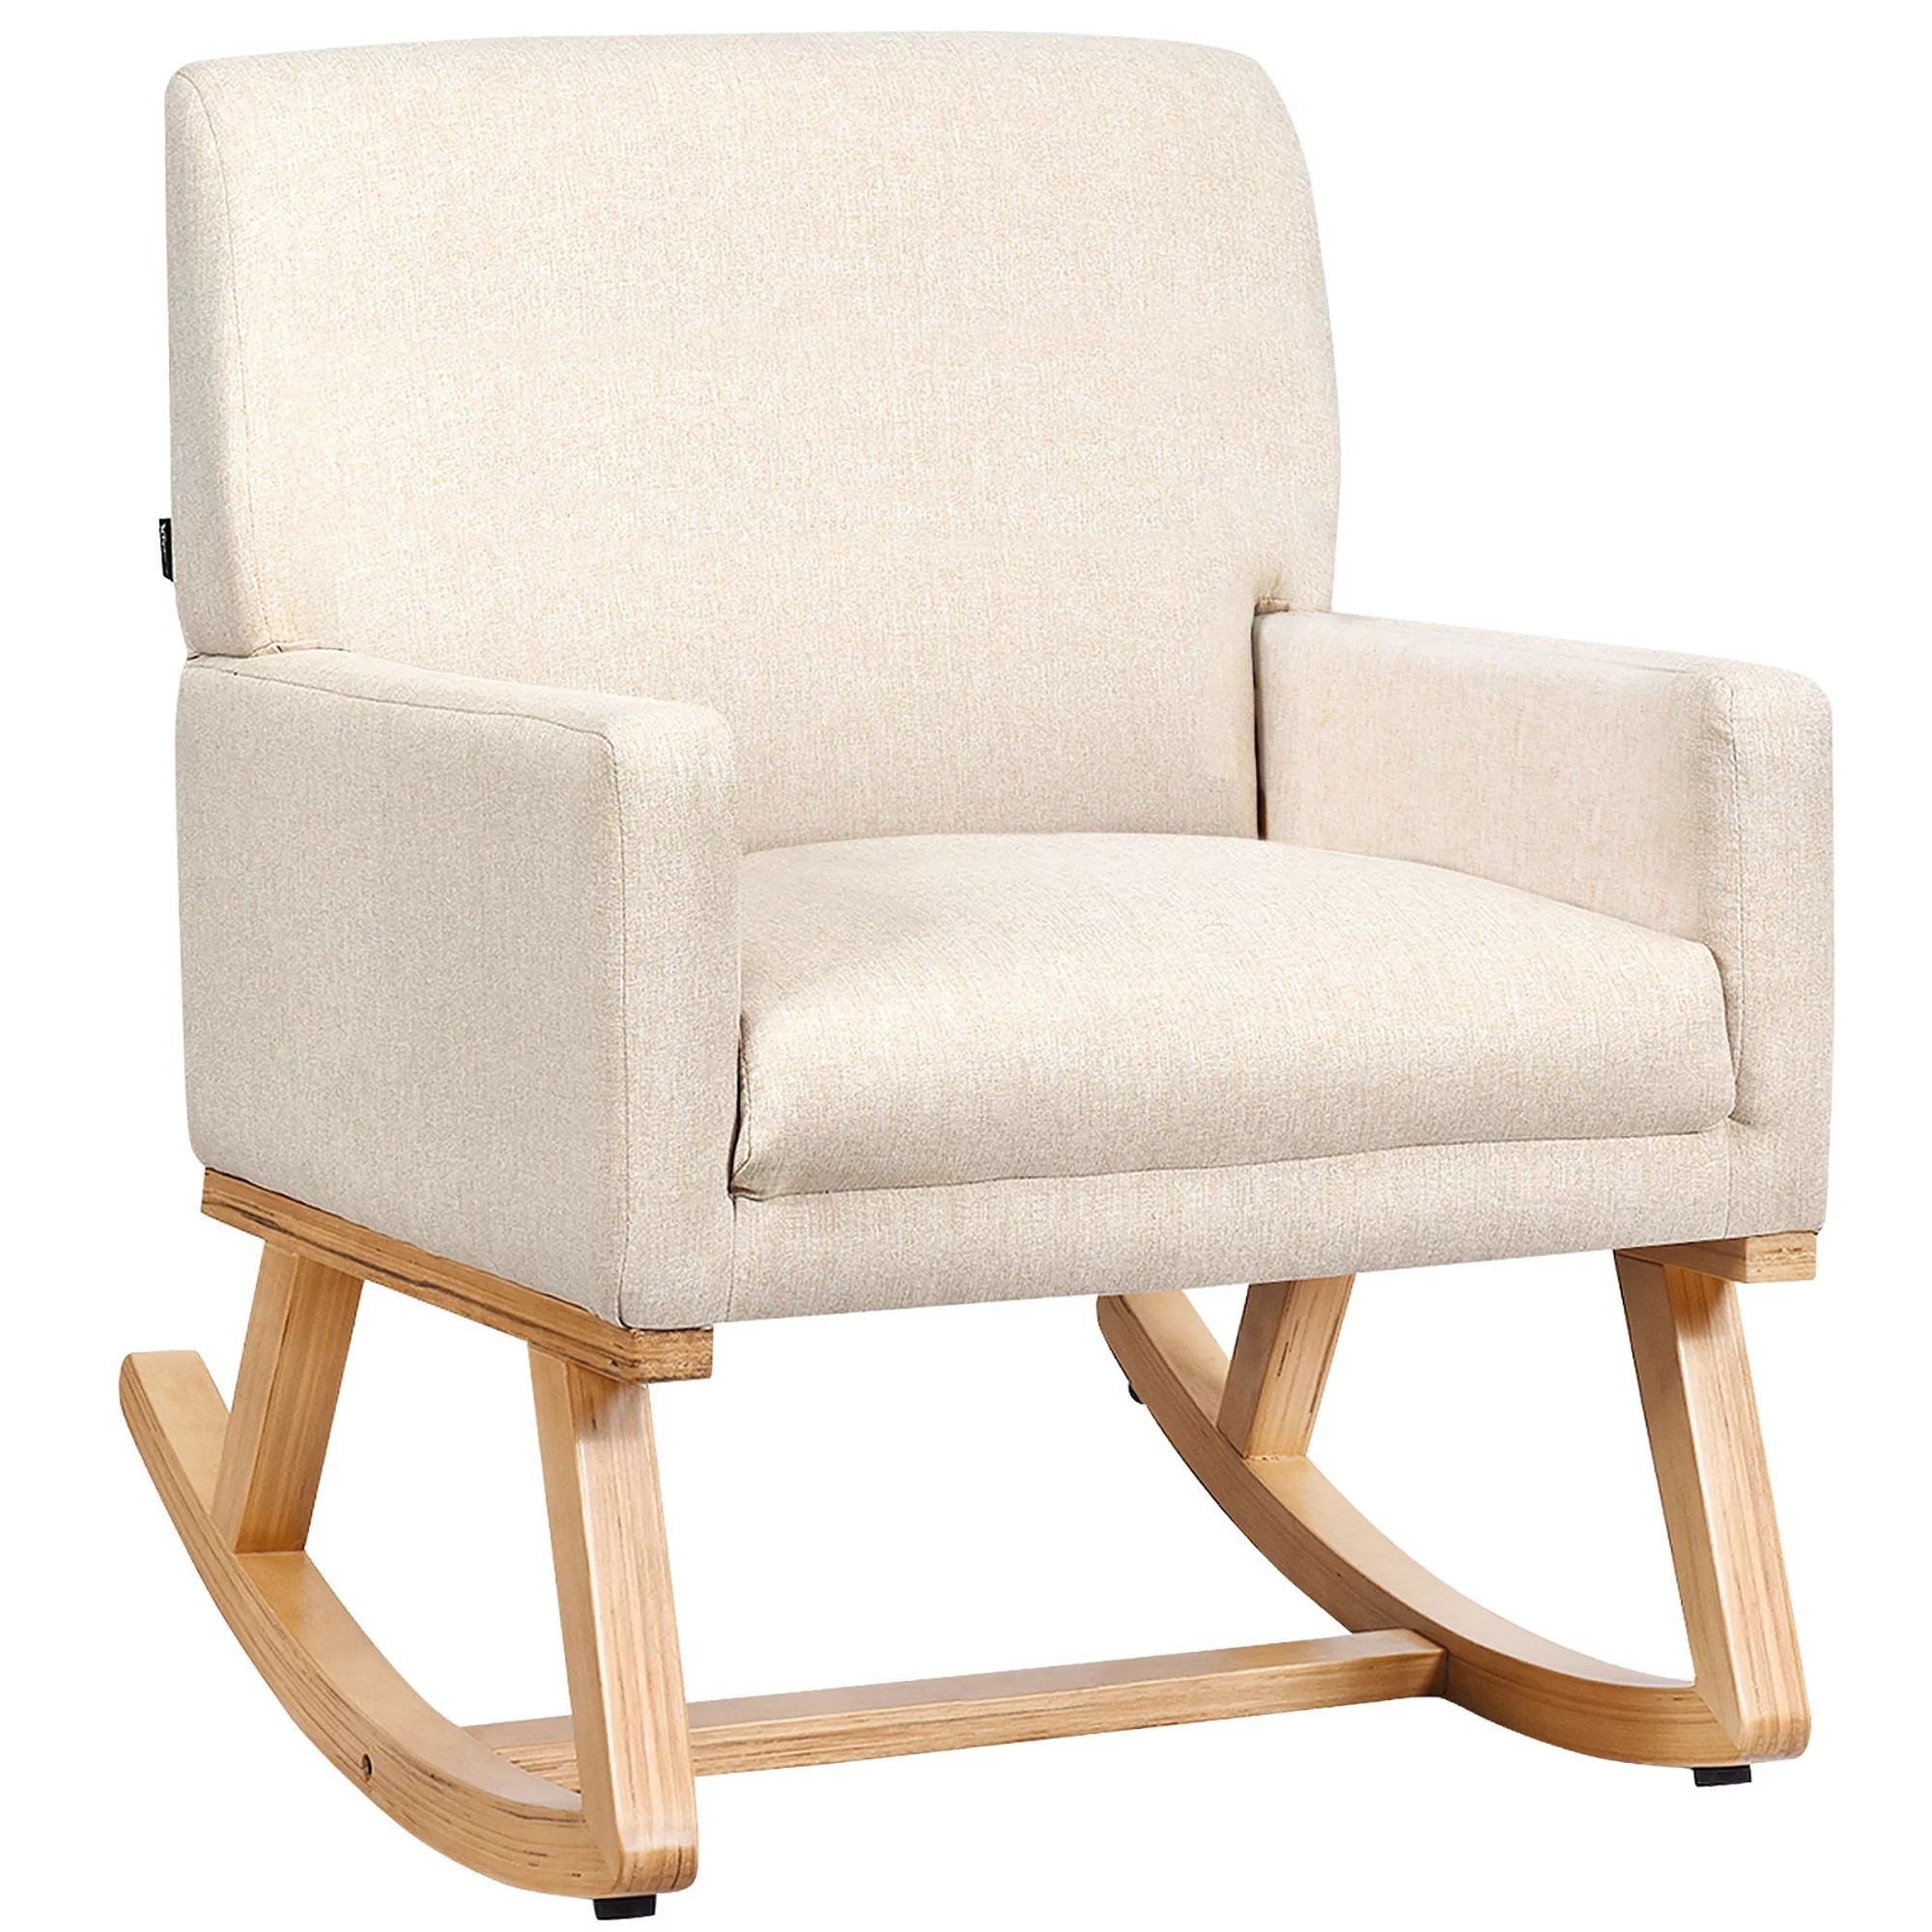 Costway Mid Century Fabric Rocking Chair Upholstered Accent Armchair Lounge Chair Beige Walmart Canada